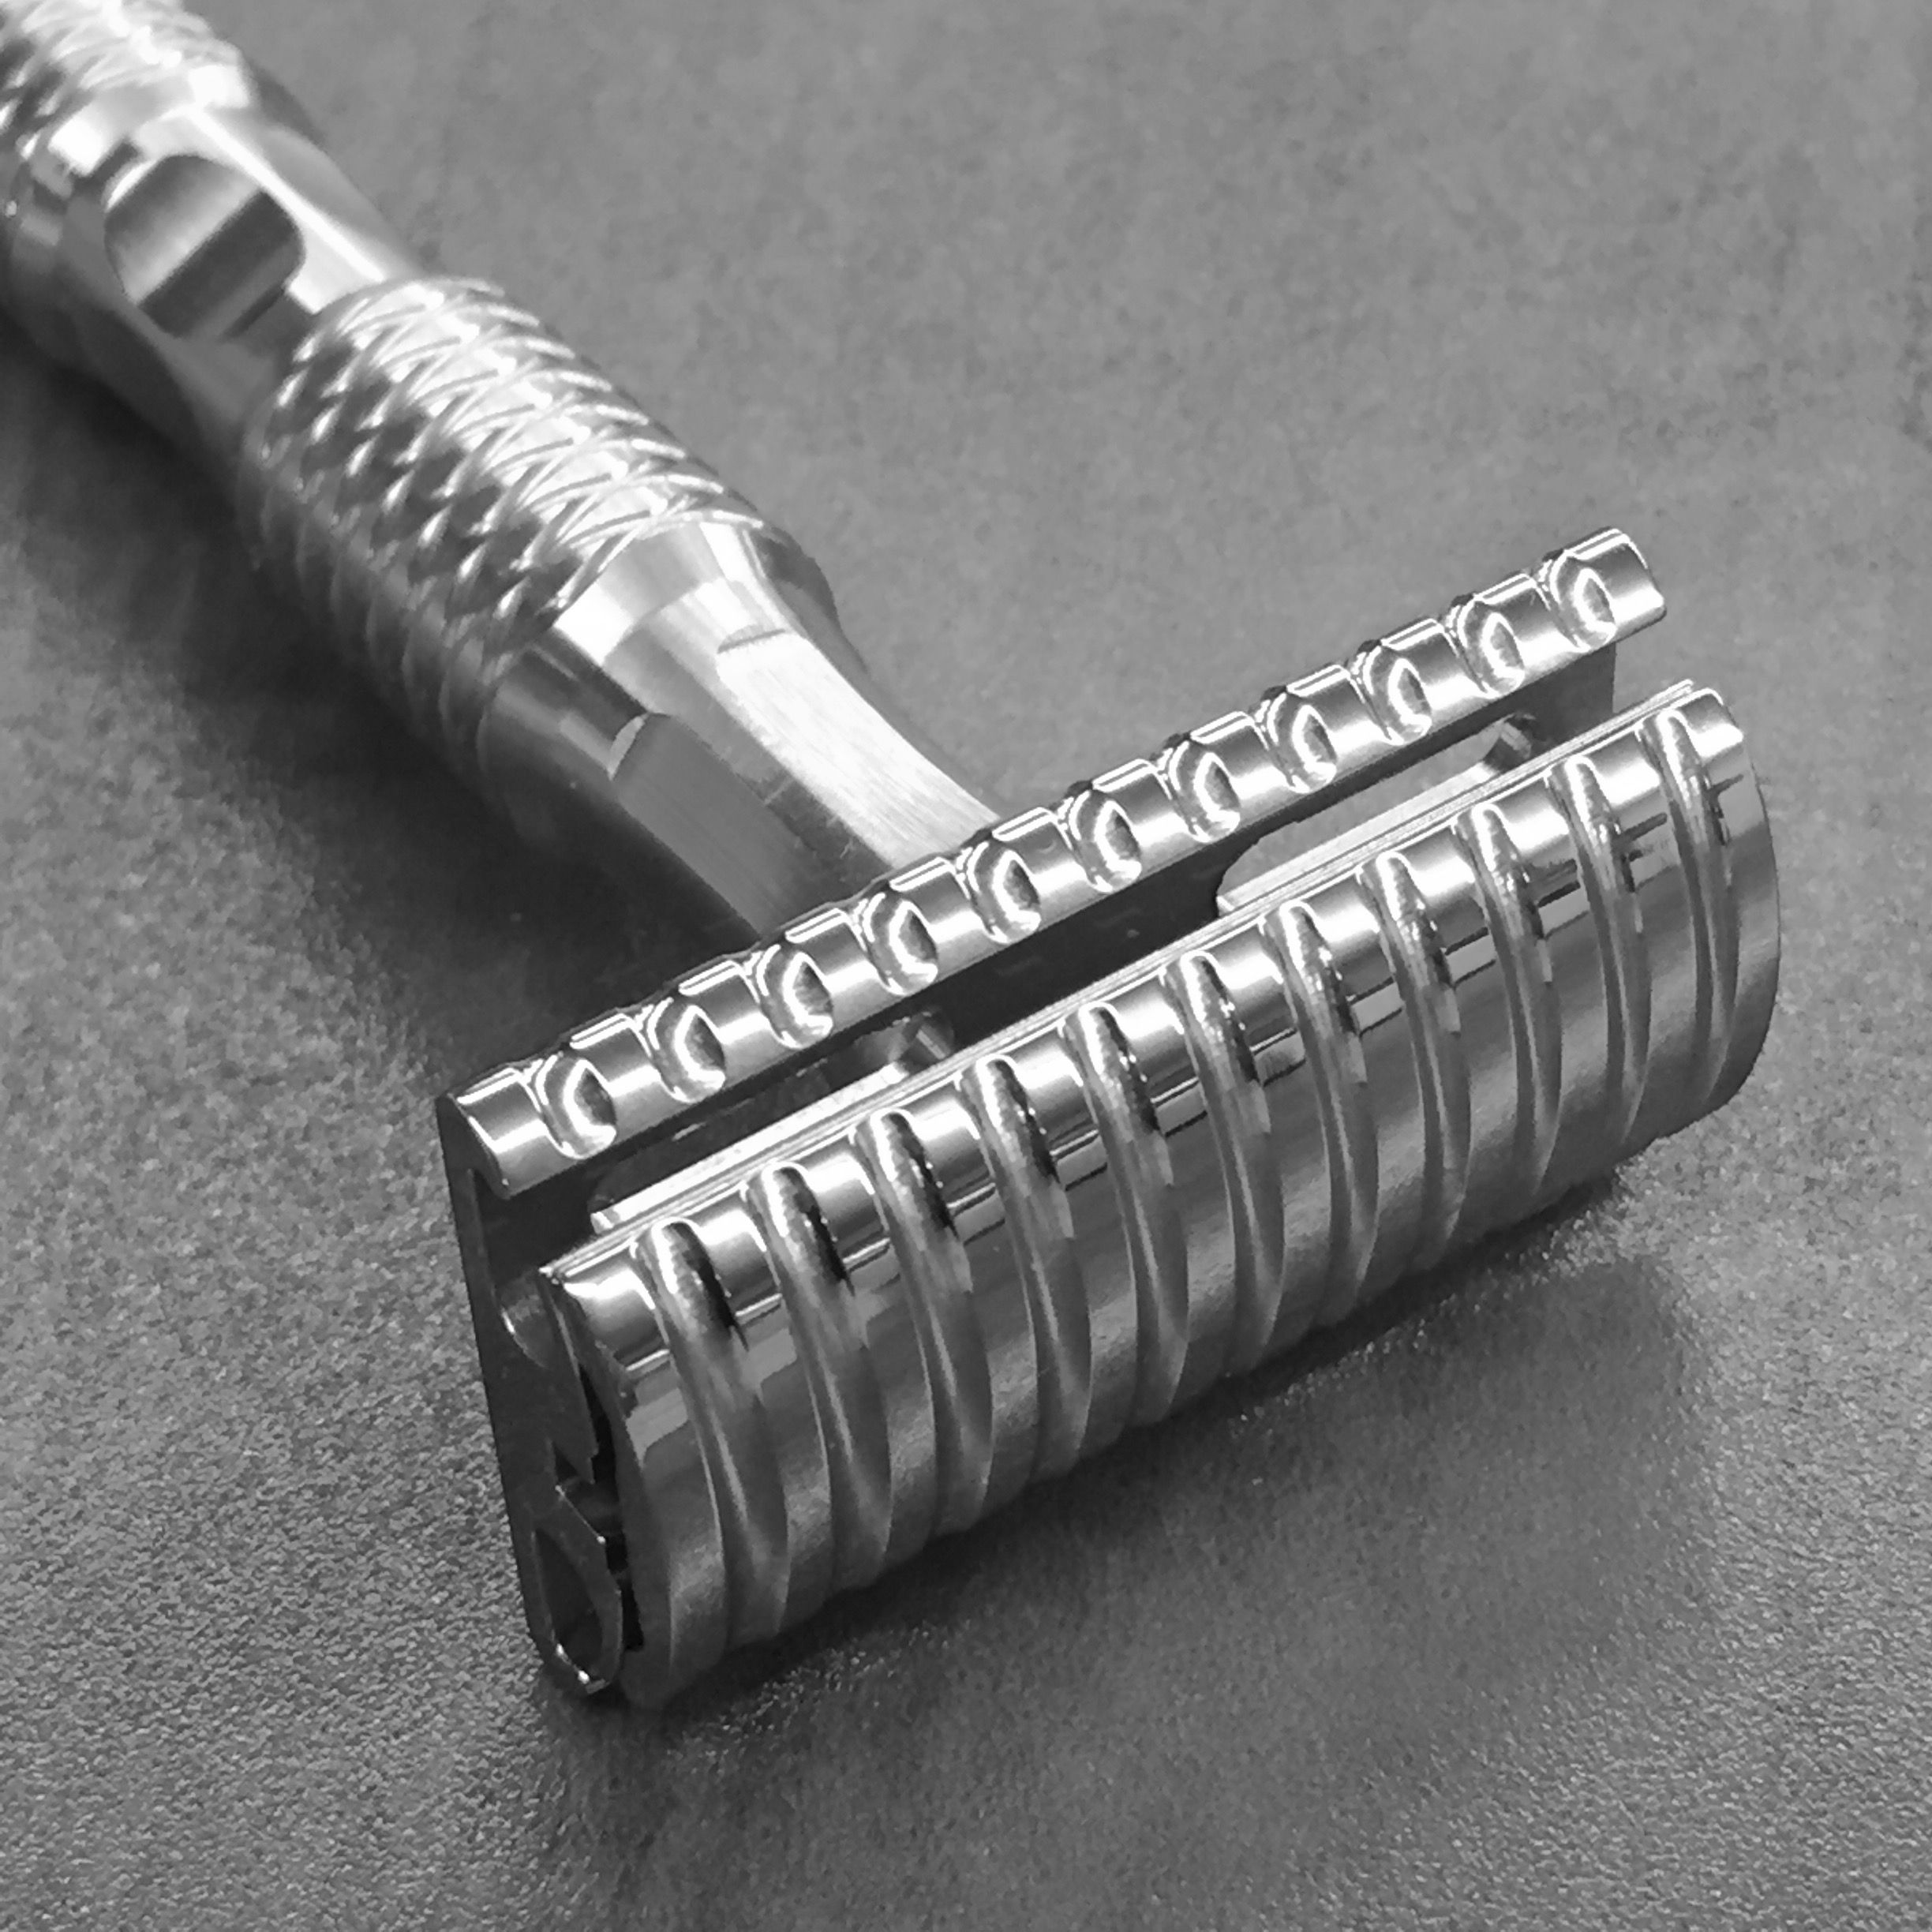 Try giving your face what it deserves. This highend razor